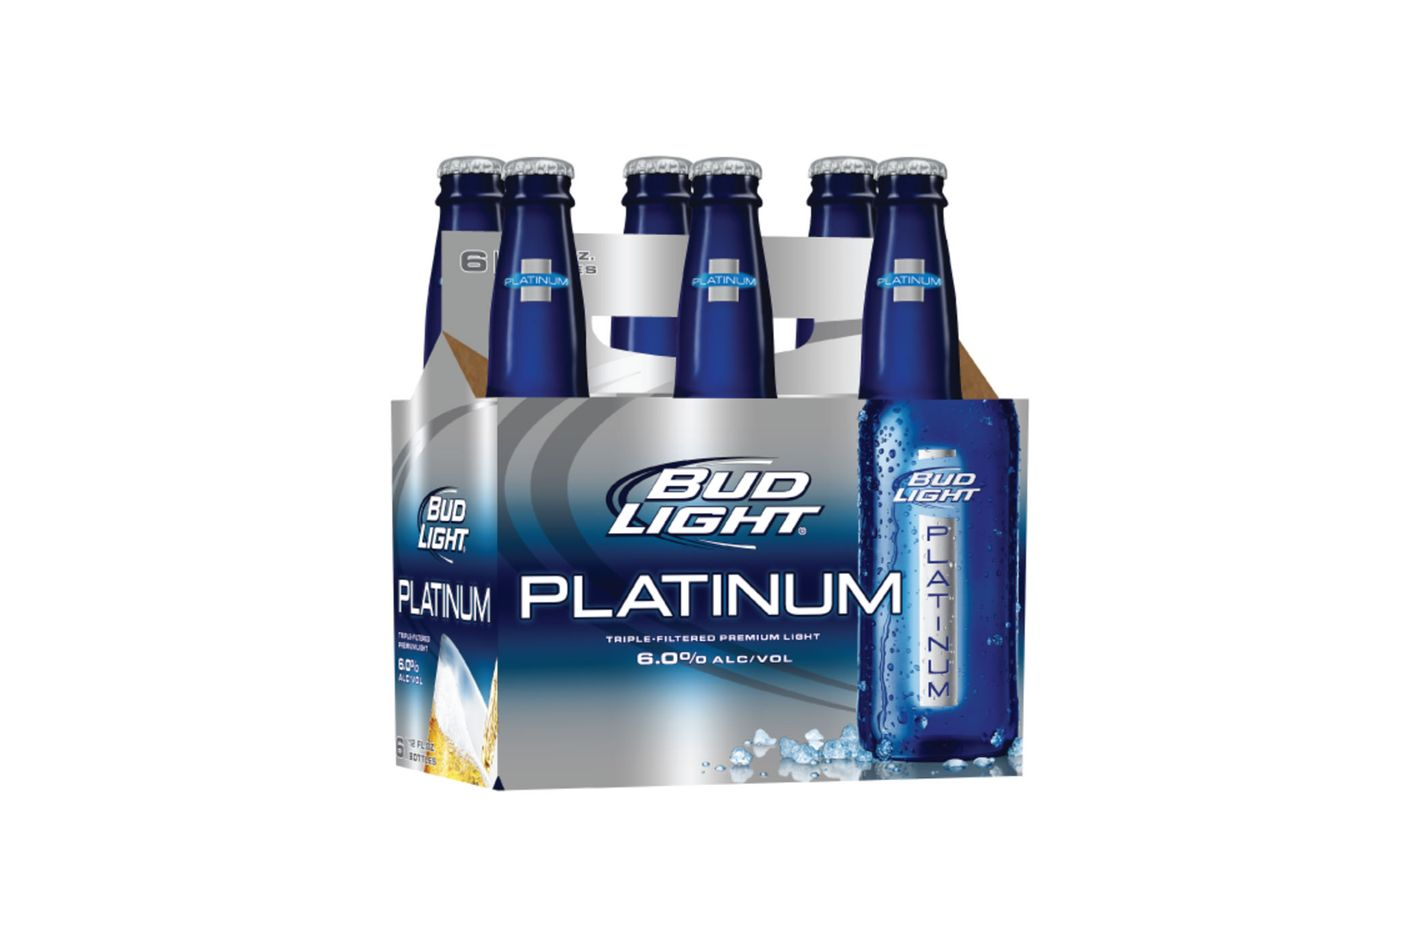 bud concept platinum inbev goplatinum light launch gagablp